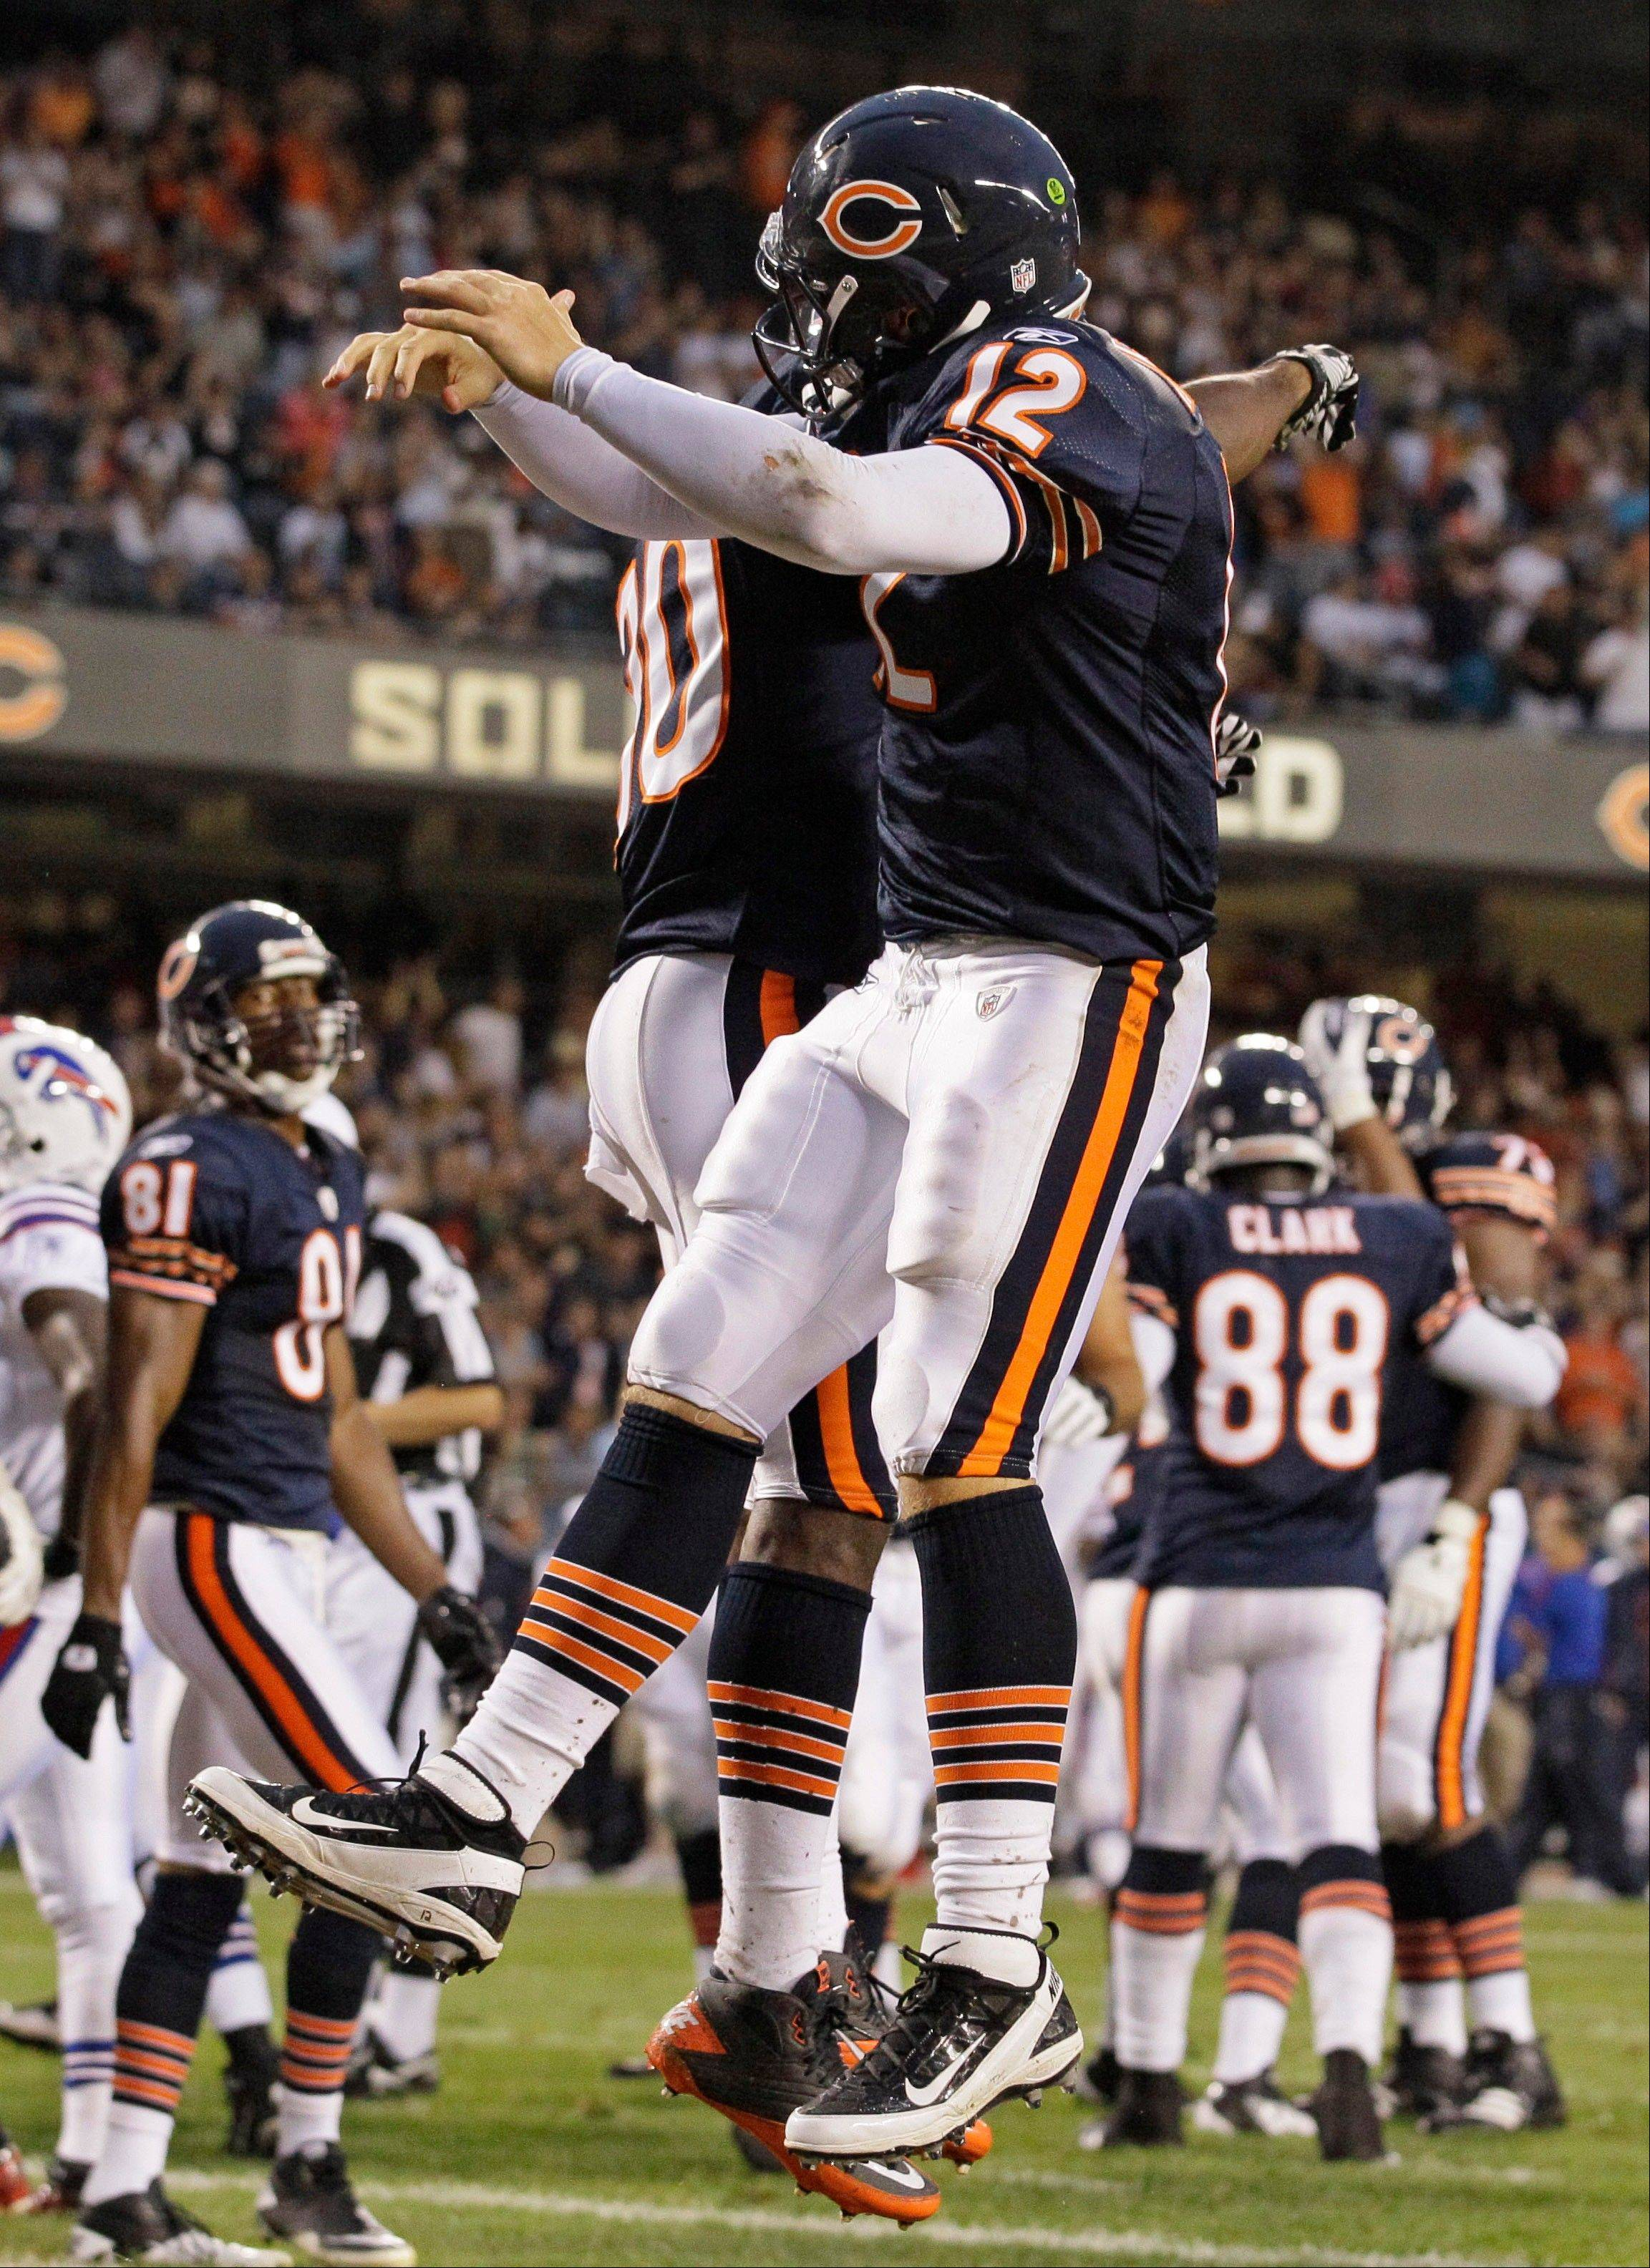 Chicago Bears quarterback Caleb Hanie (12) celebrates after scoring a touchdown with teammate Earl Bennett in the first half an NFL preseason football game Saturday against the Buffalo Bills game.